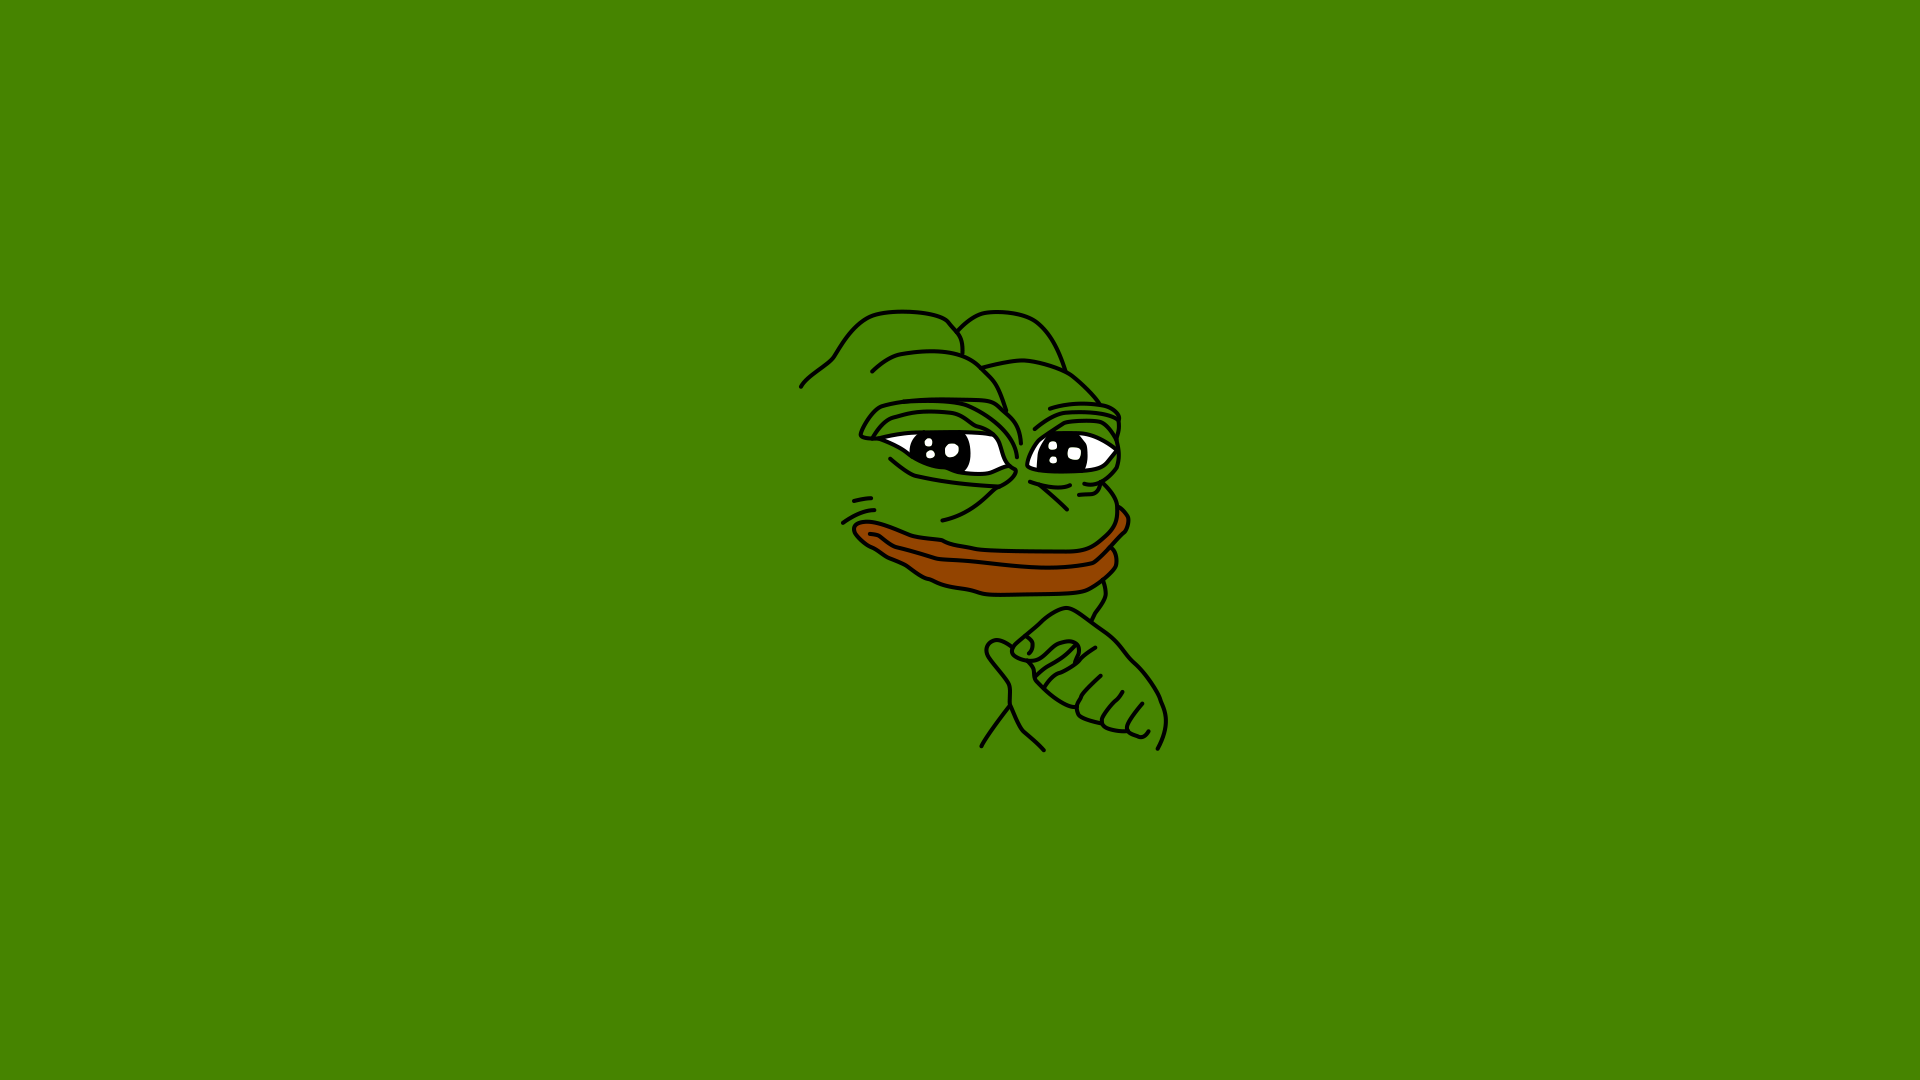 pepe the frog hd wallpaper - photo #5